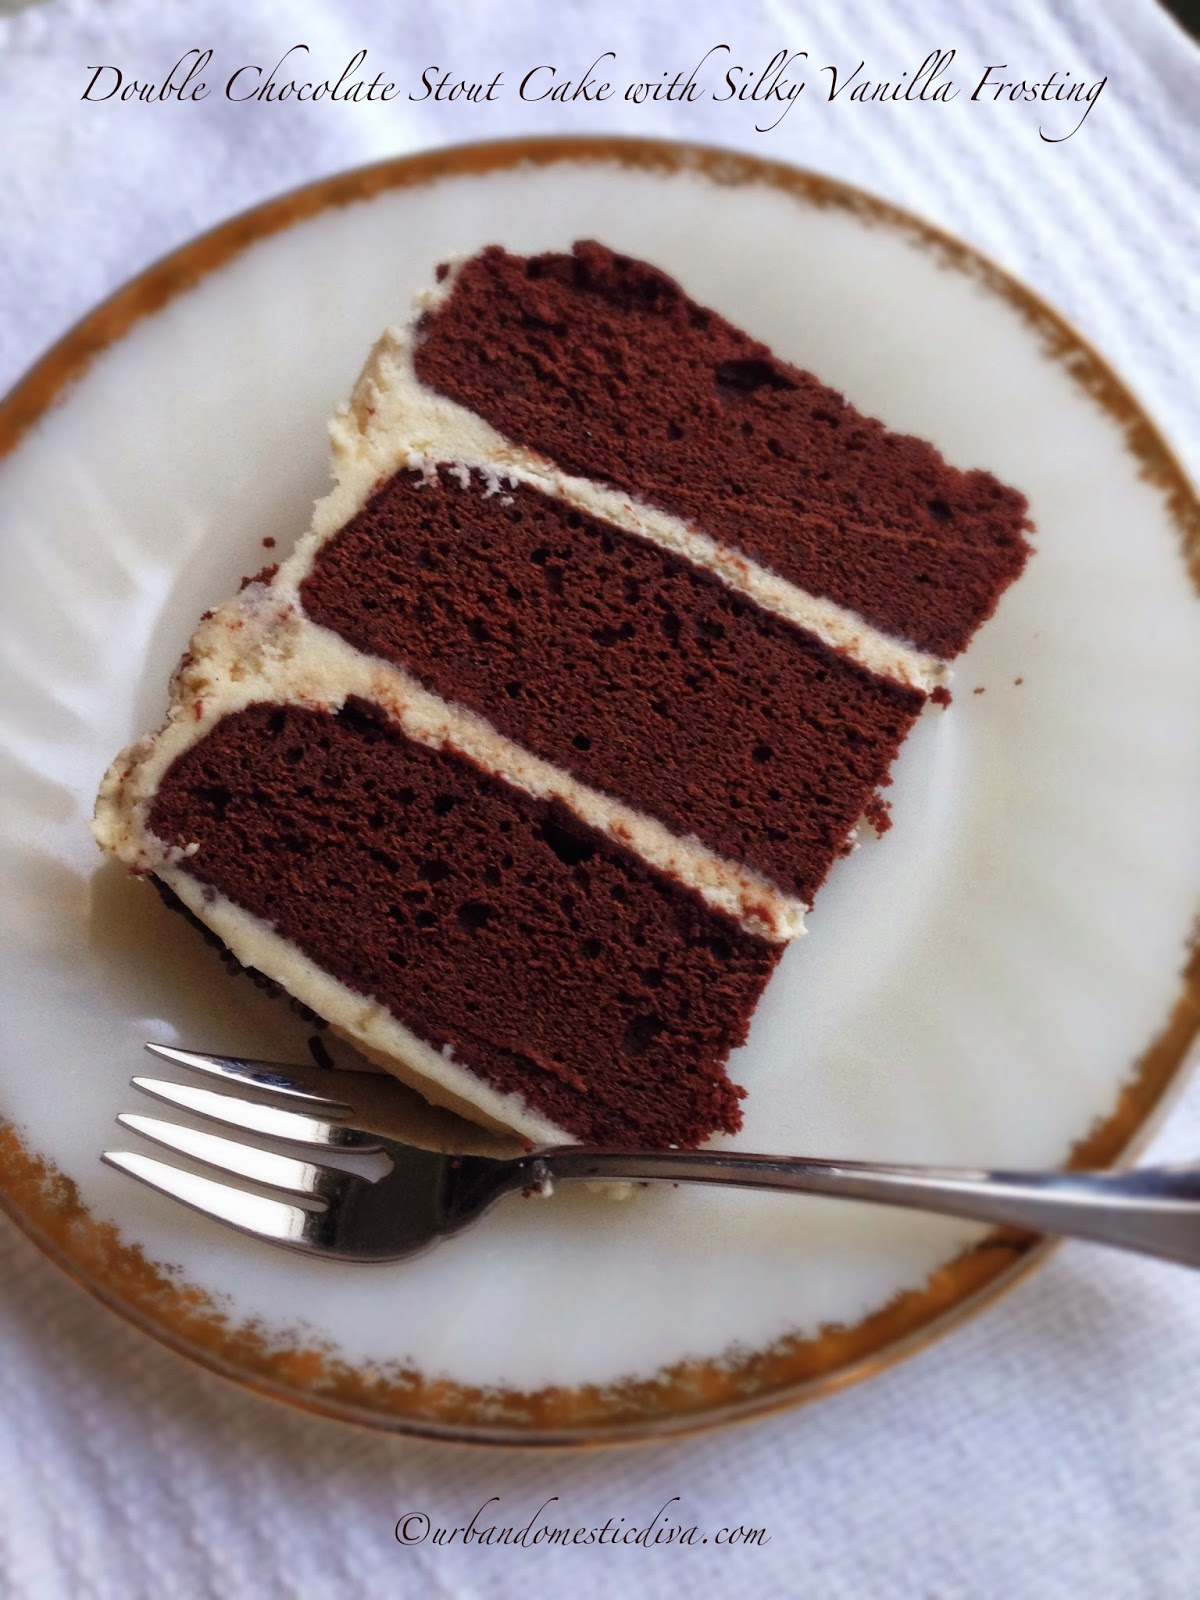 ... Diva: RECIPE: Double Chocolate Stout Cake with Silky Vanilla Frosting